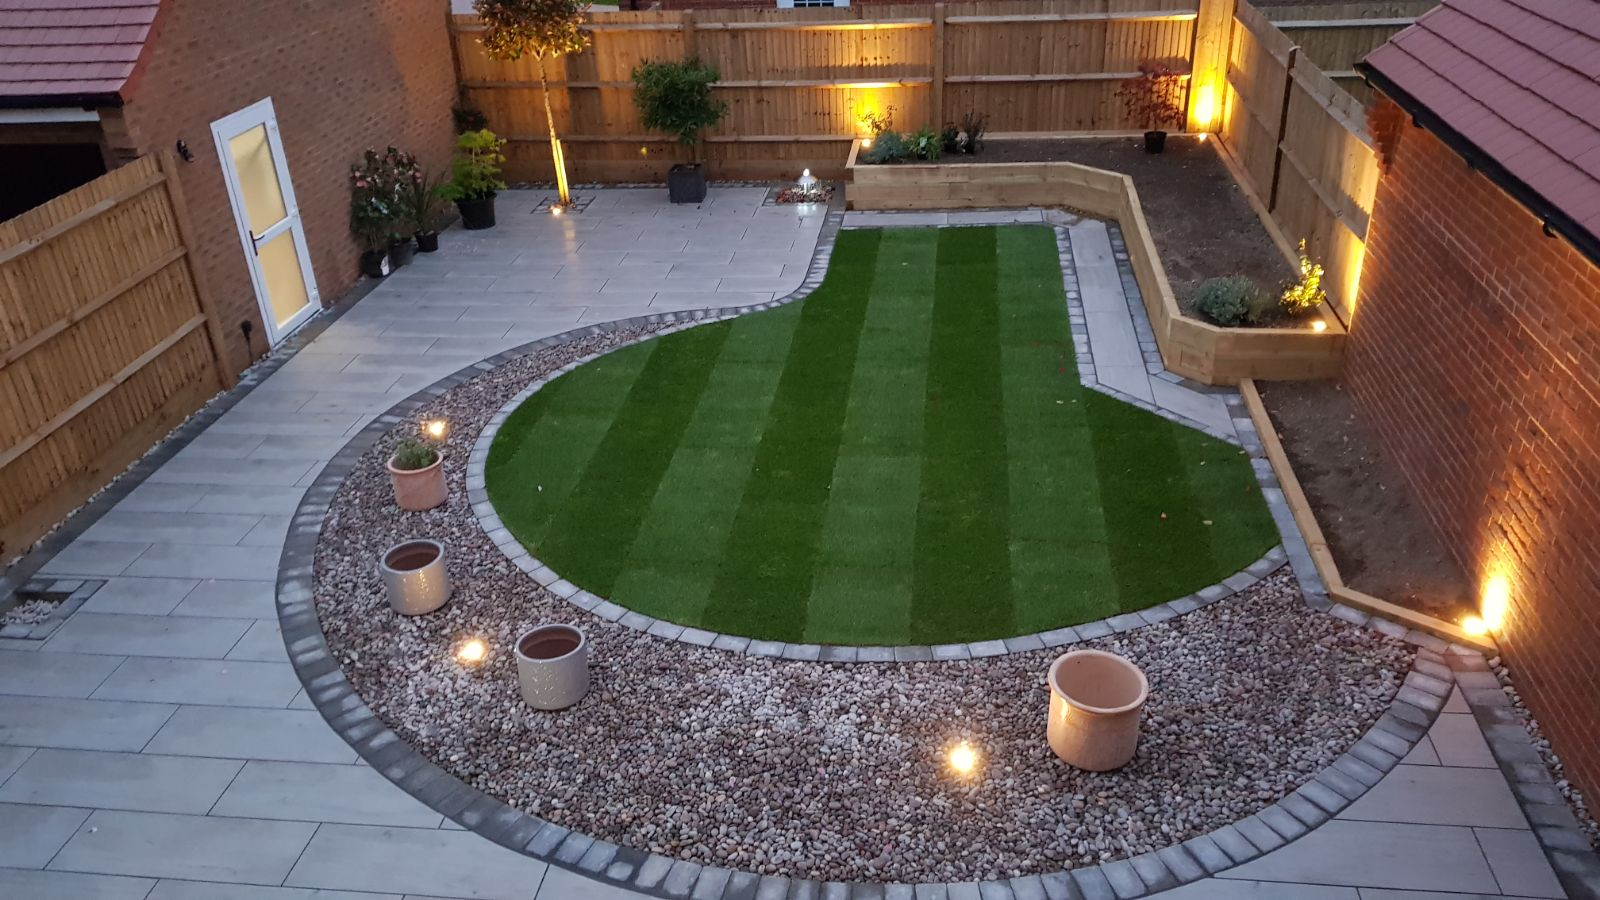 A beautiful garden transformation, where we have used porcelain paving, new turf, installed planters with sleepers and also pit lighting all around the garden, this garden was in Felpham Bognor Regis West Sussex. This patio and garden design won us second place on the Brett paving national awards ceremony.